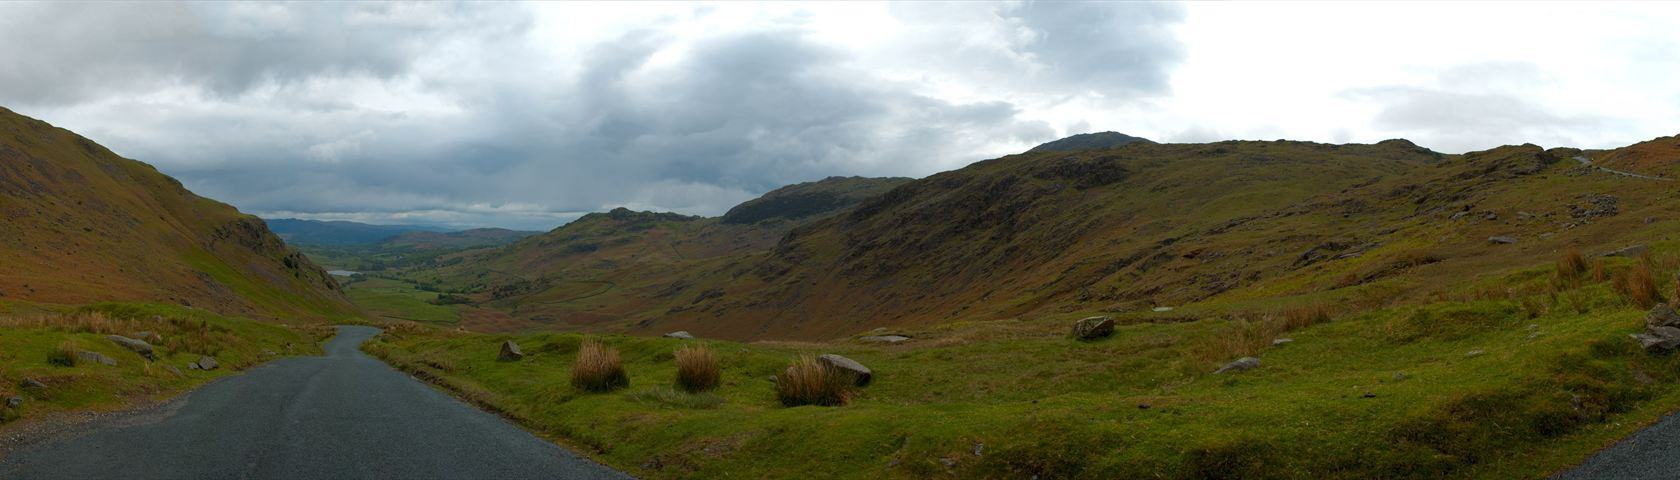 Mountain Pass in the Lake District, England